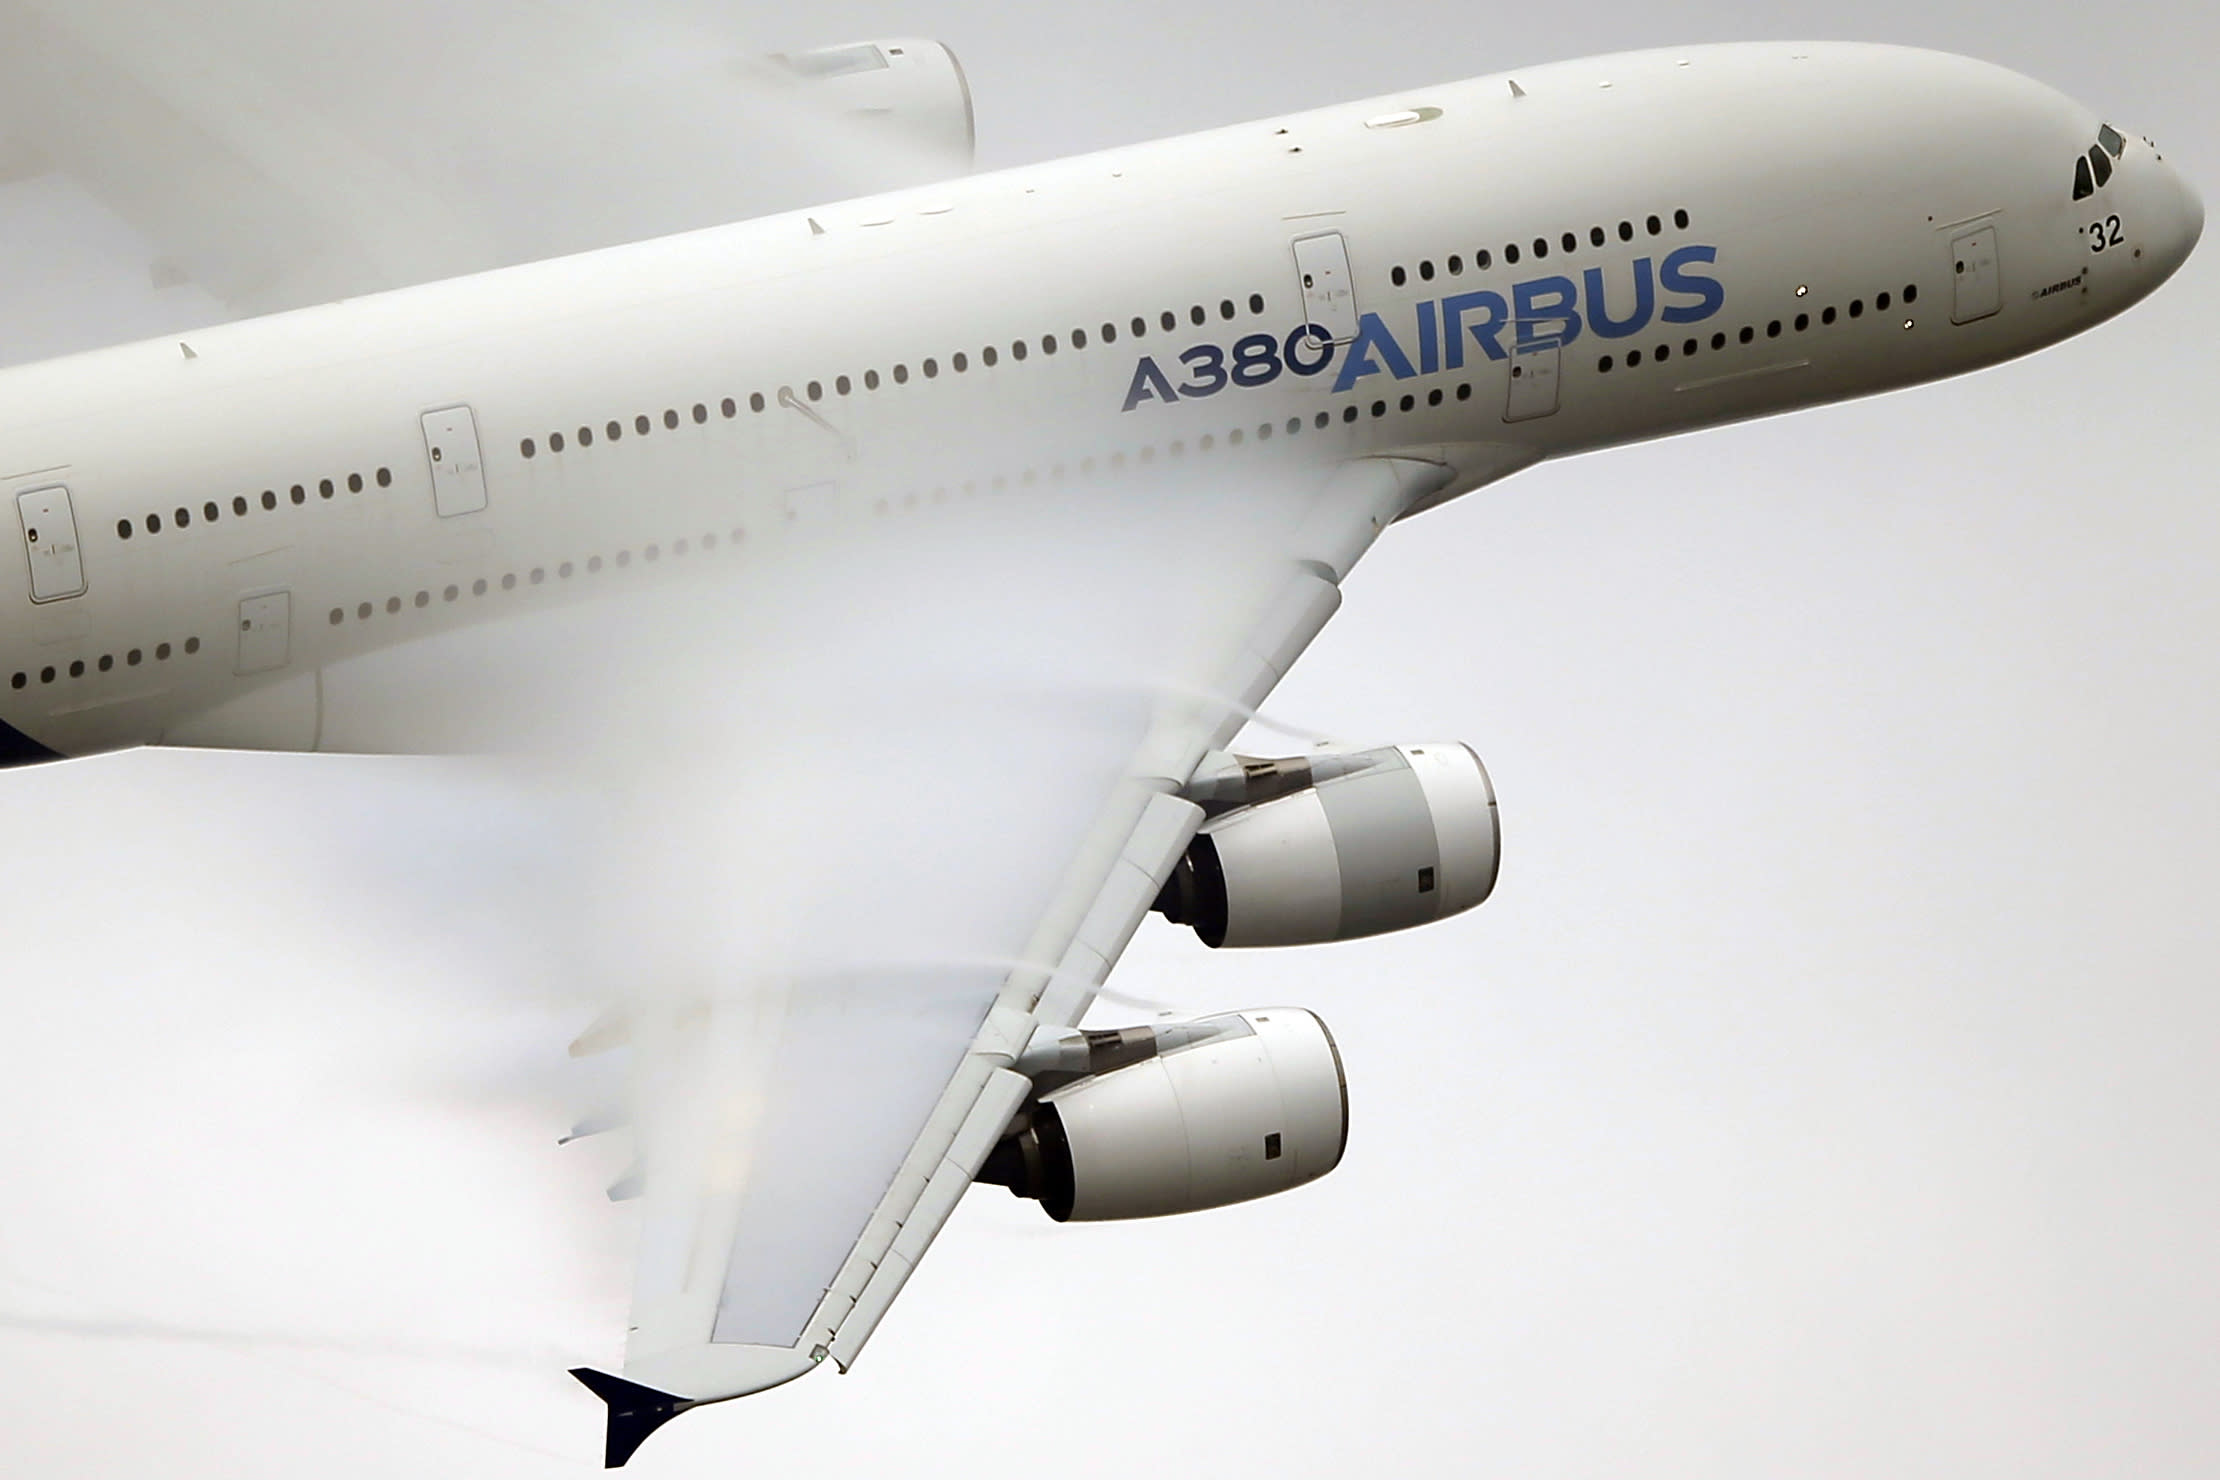 Airbus agrees to settle bribery and corruption cases